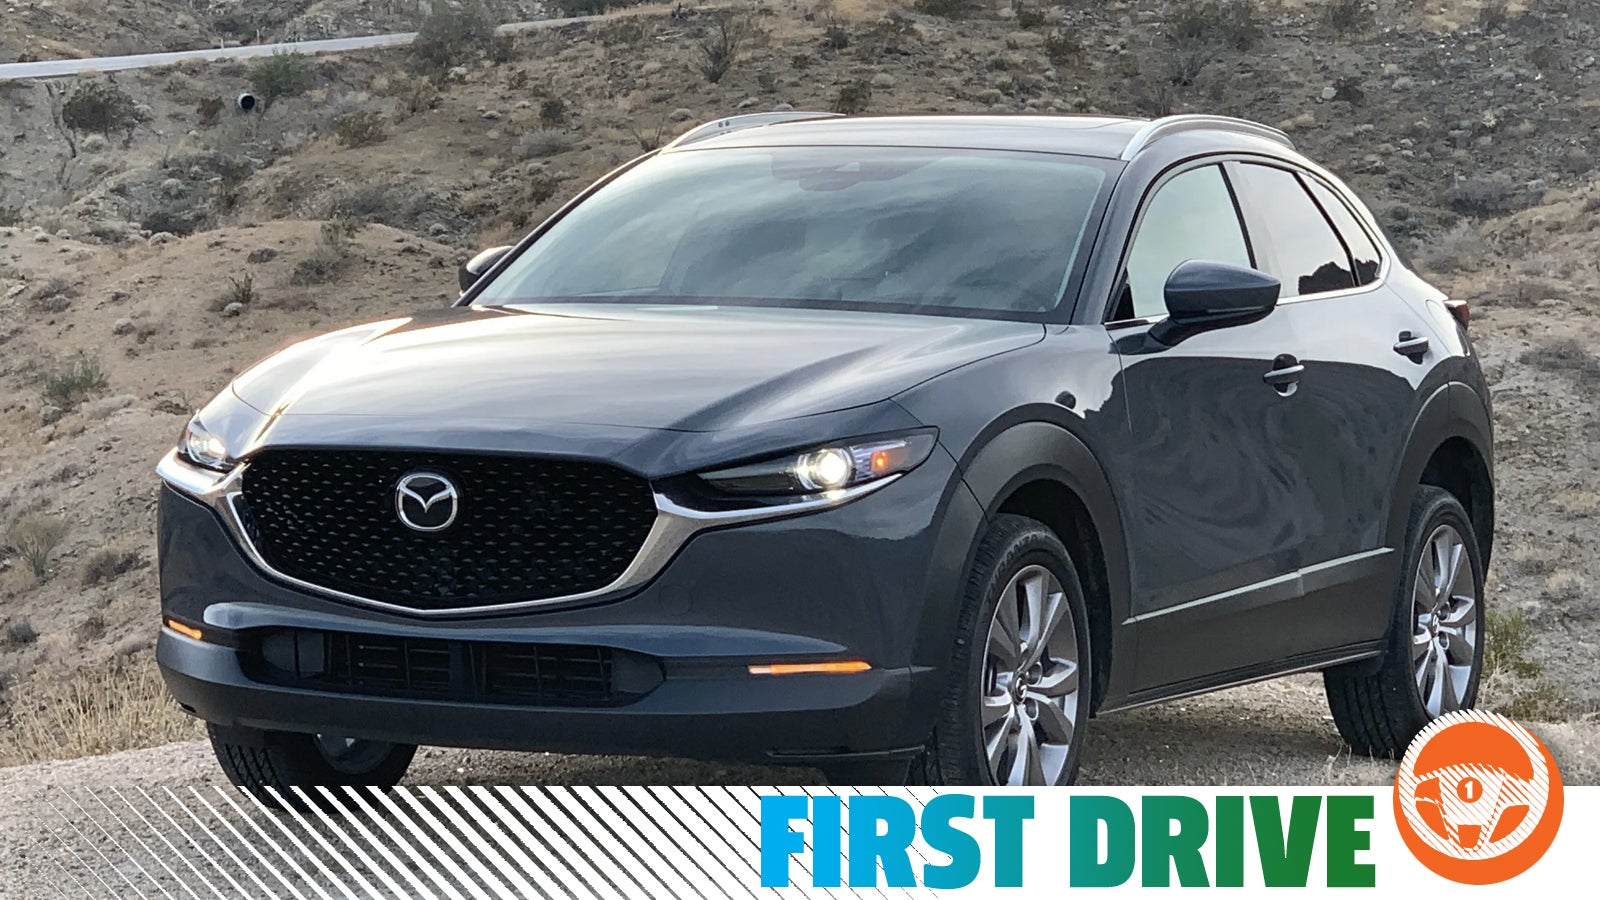 The 2020 Mazda CX-30 Feels Like A Lower-Budget Porsche Macan